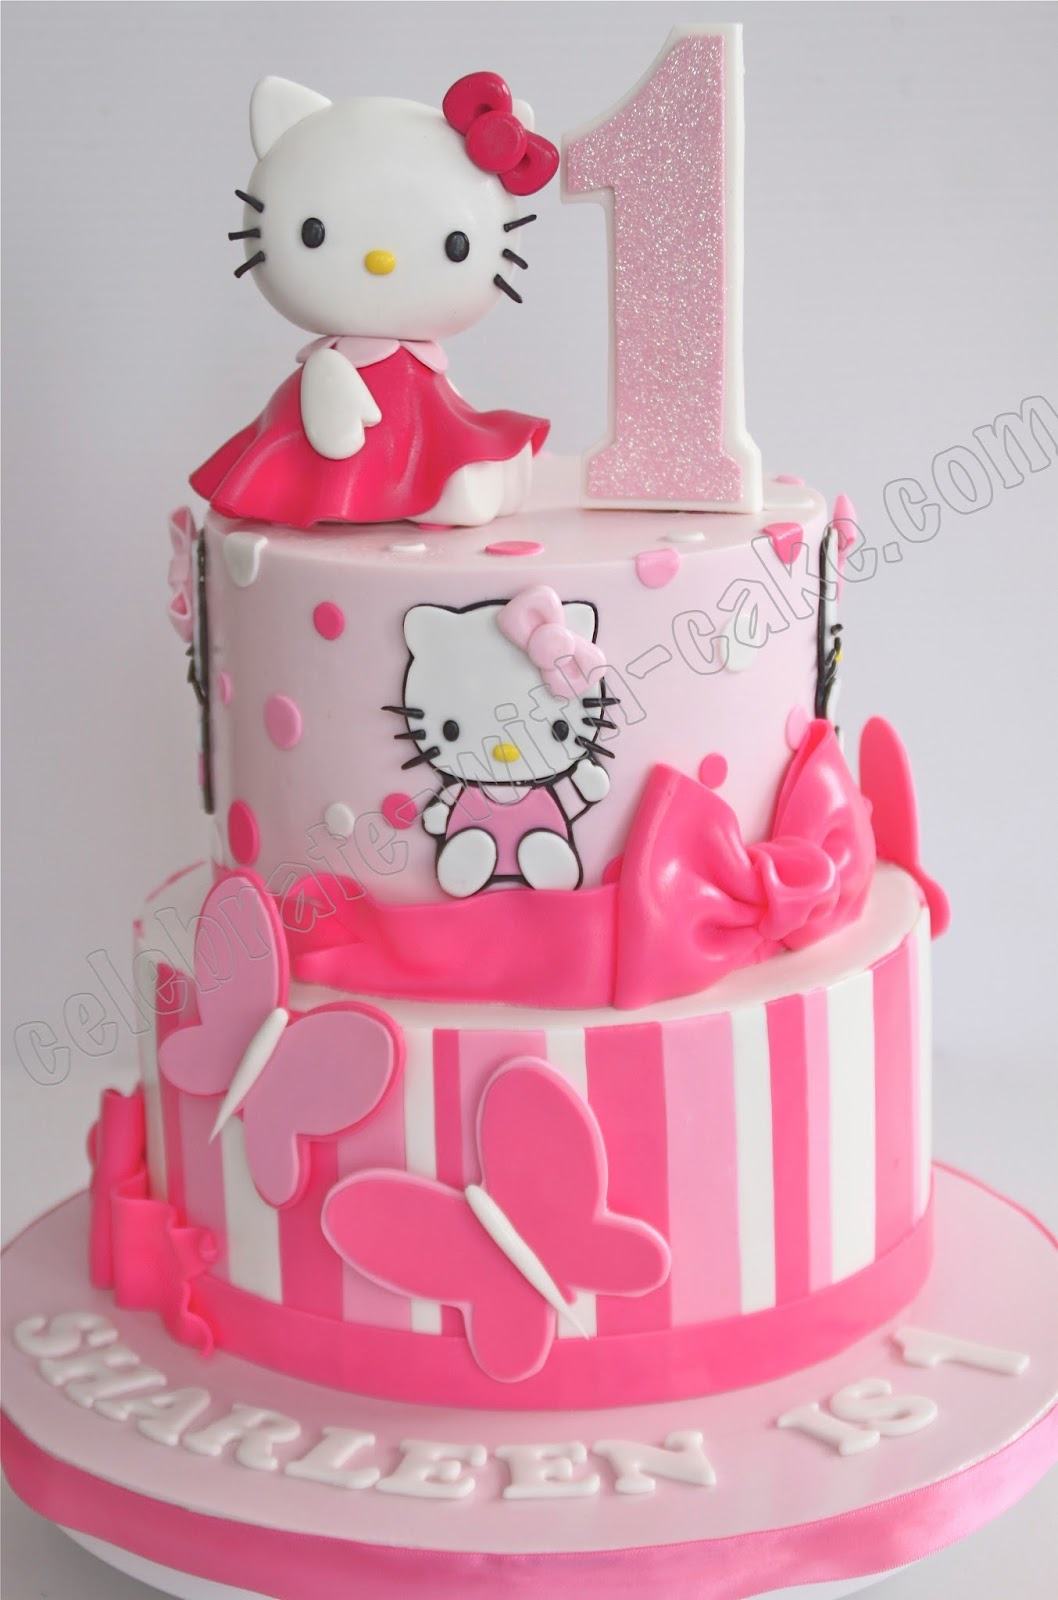 Birthday Cake Pictures Hello Kitty : Celebrate with Cake!: 1st Birthday Hello Kitty Tier Cake